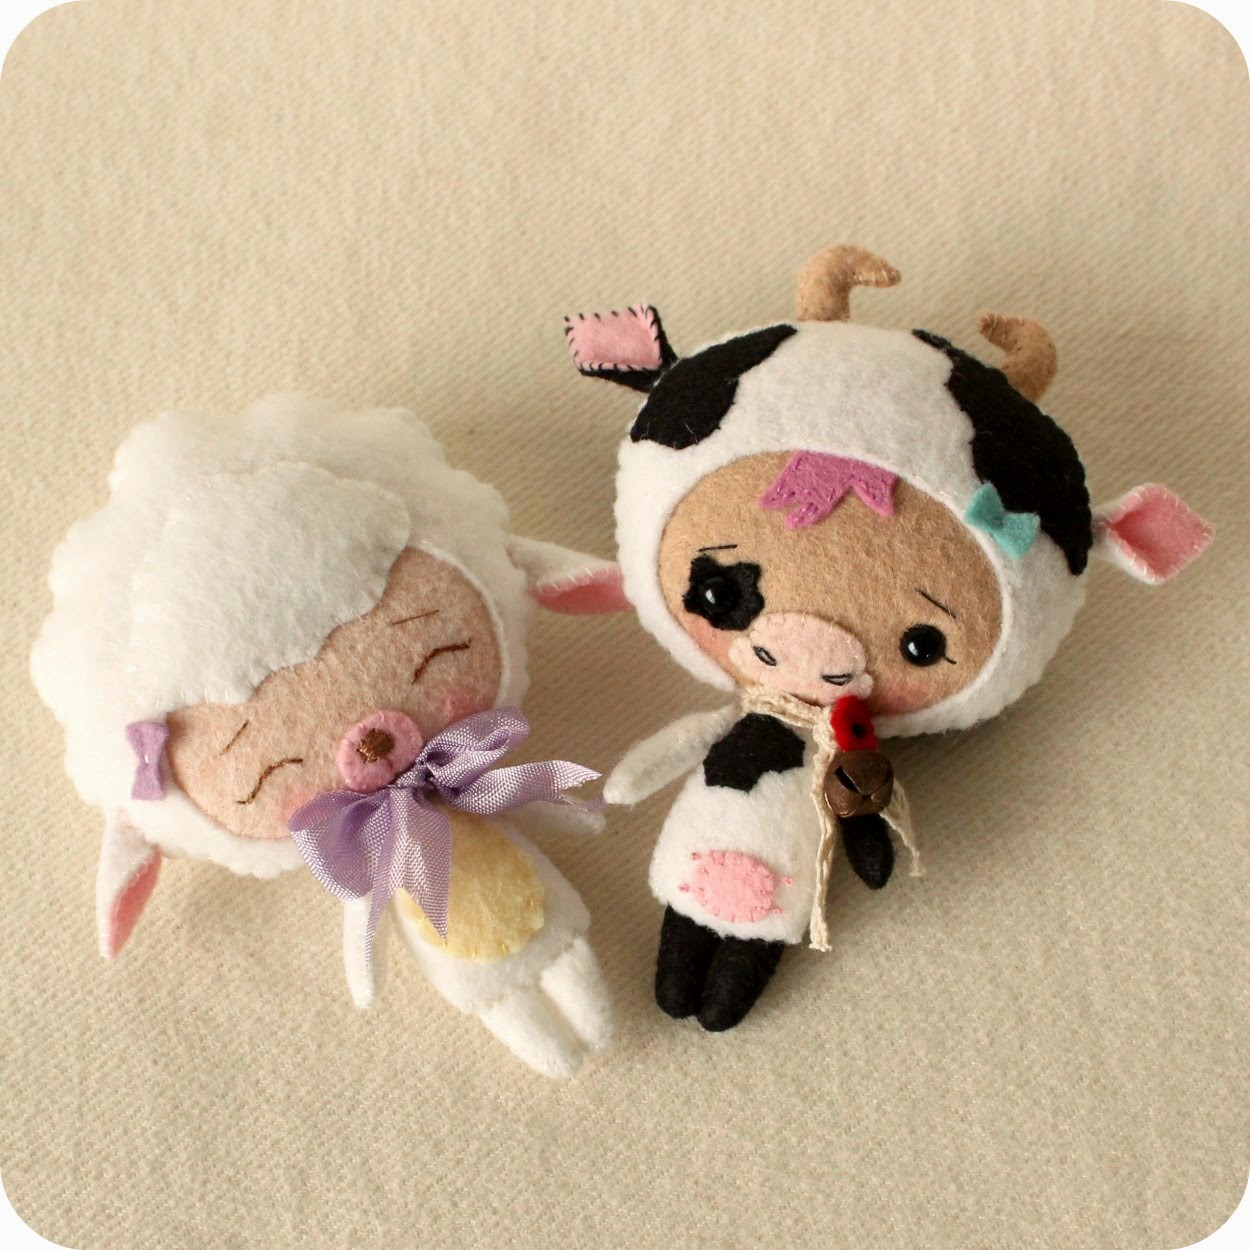 Binky Moo and Baa